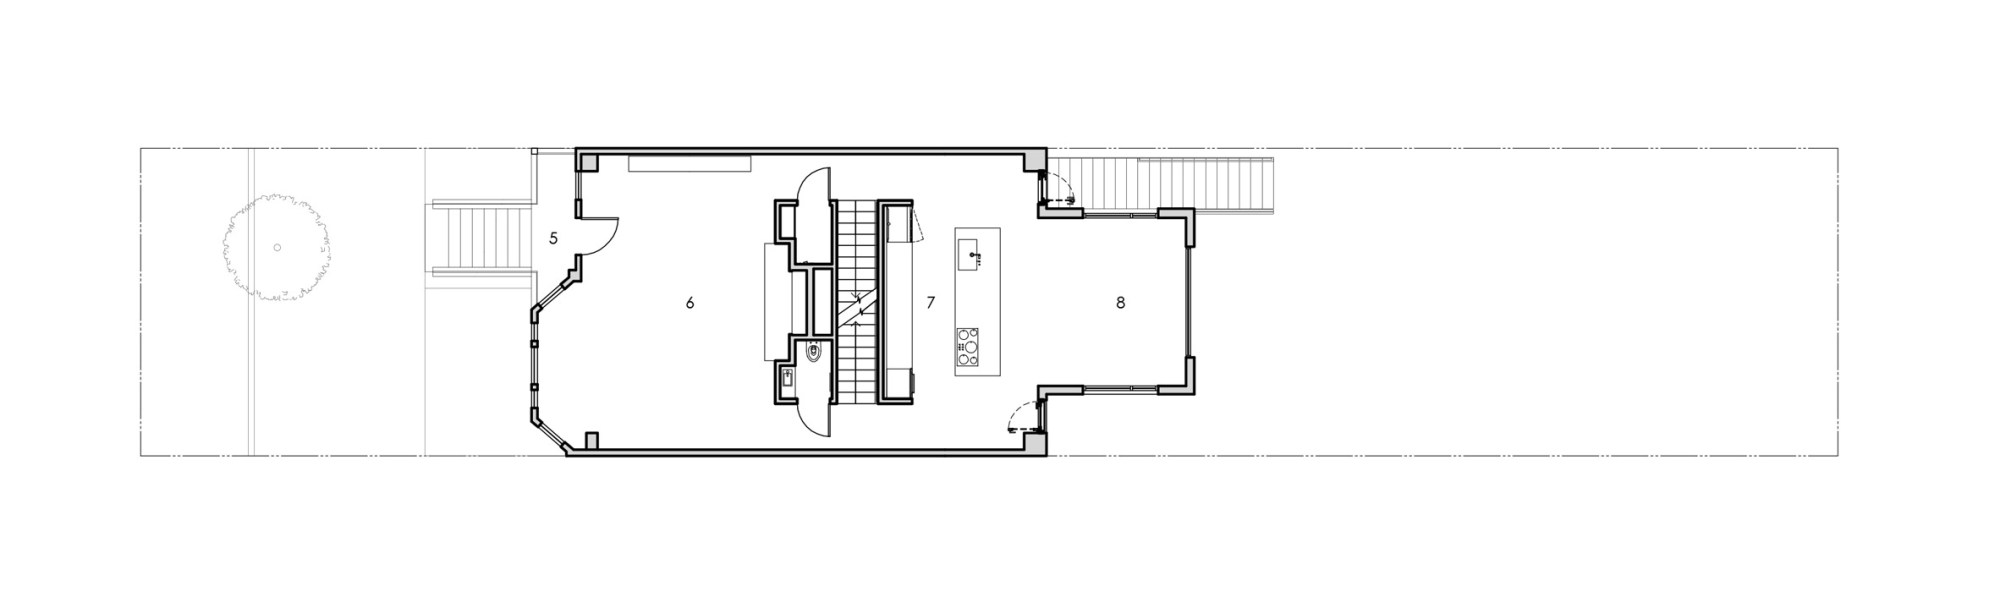 hight resolution of basement floor plan gable house by edmonds lee architects